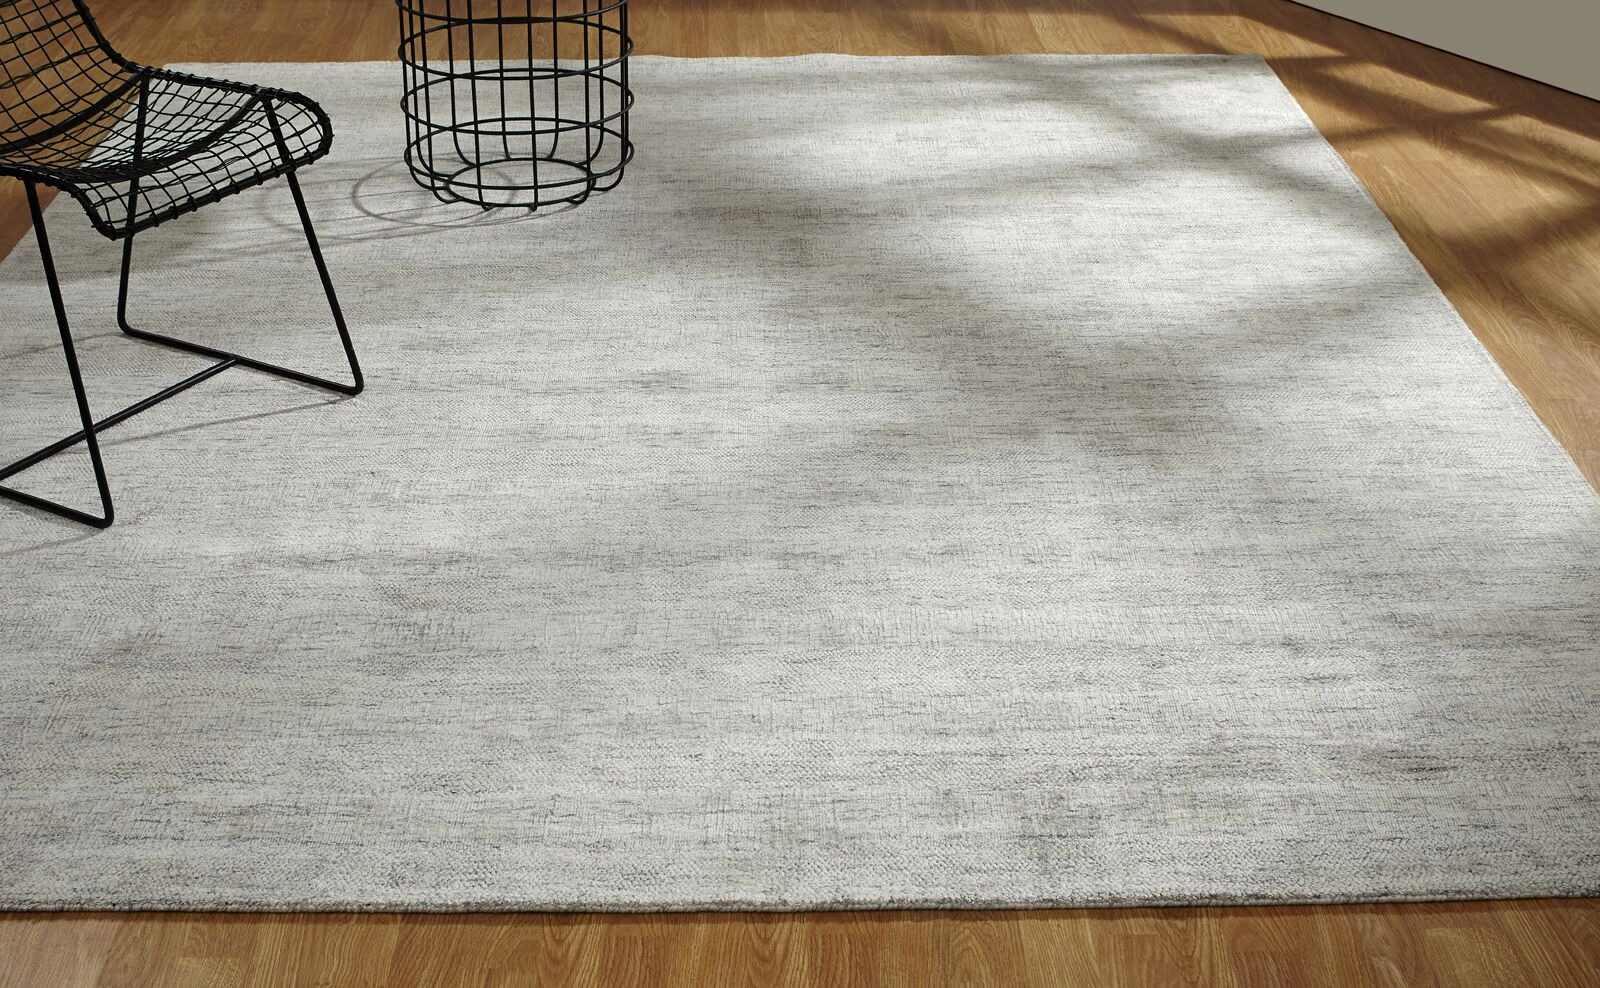 Doddridge Hand-Knotted Gray Area Rug Rug Size: Rectangle 8'6